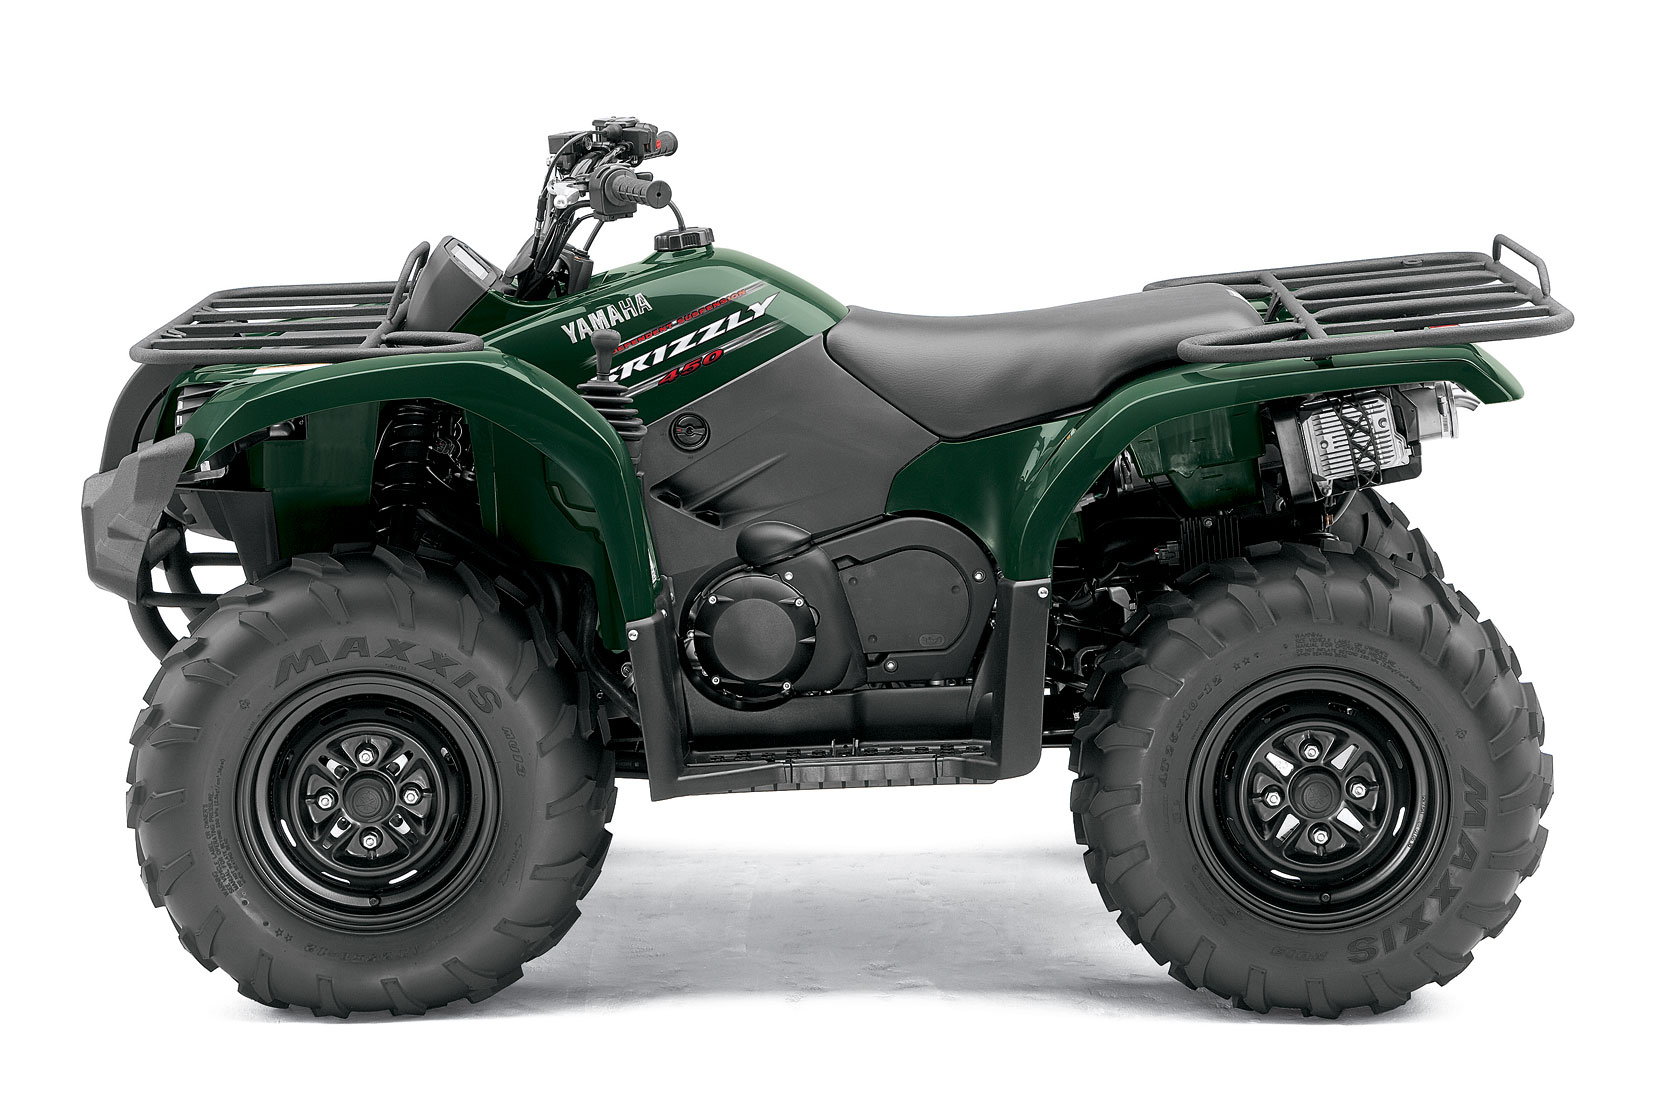 Wiring Diagram 2011 450 Yamaha Grizzly - Wiring Diagram Database